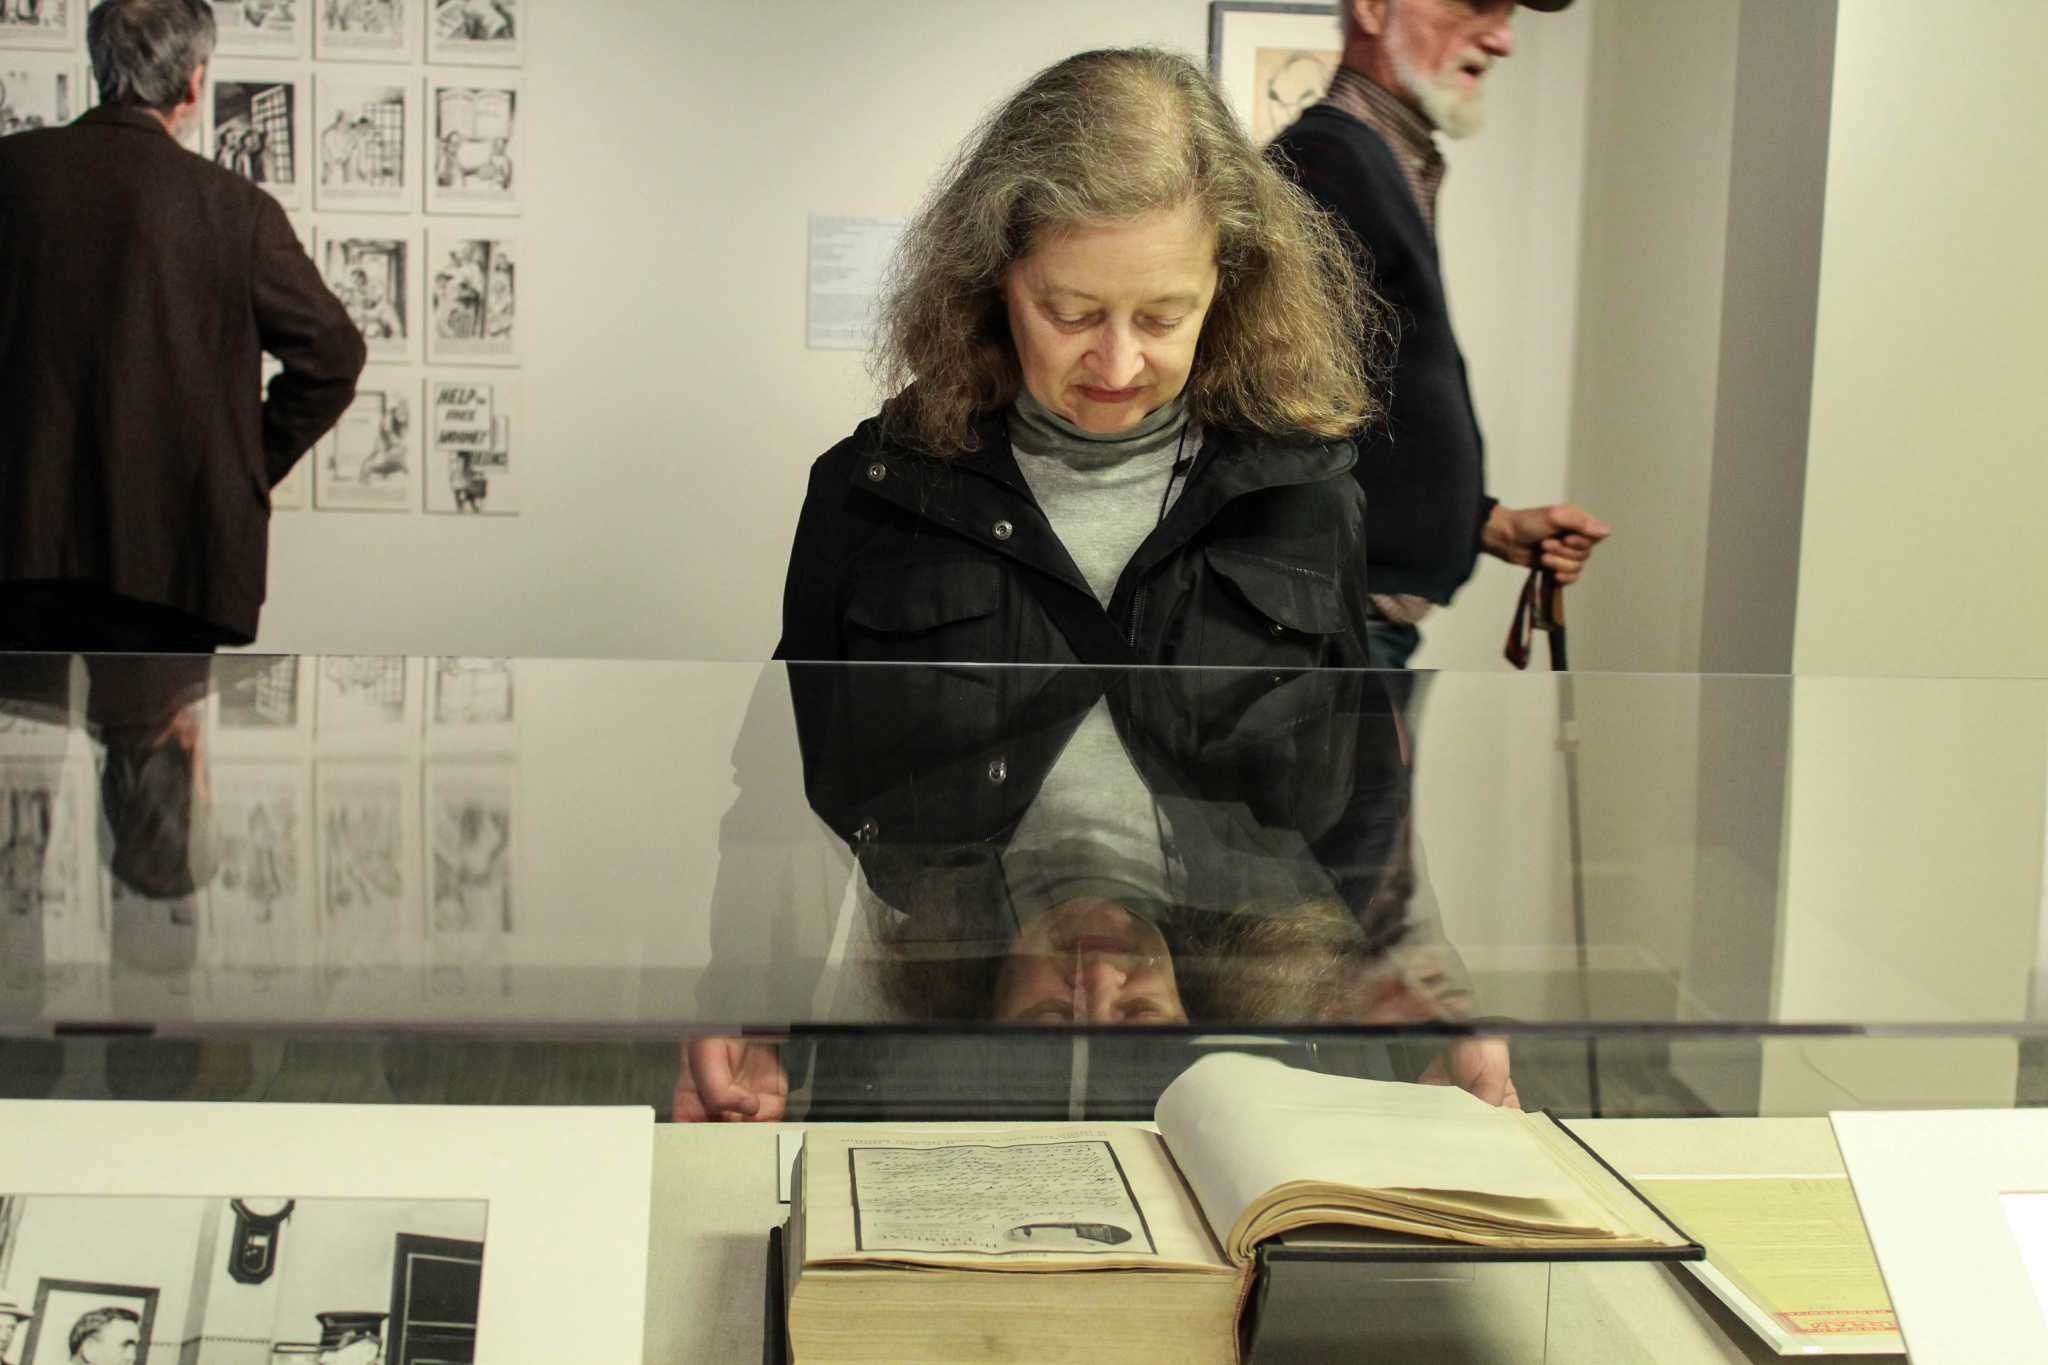 San Francisco resident Lisa Dunseth looks at a book during the exhibit of the San Francisco Preparedness Day Bombing in 1916 in the J. Paul Leonard Library on Tuesday, Nov. 29, 2016. Photograph by: Kayleen Fonte